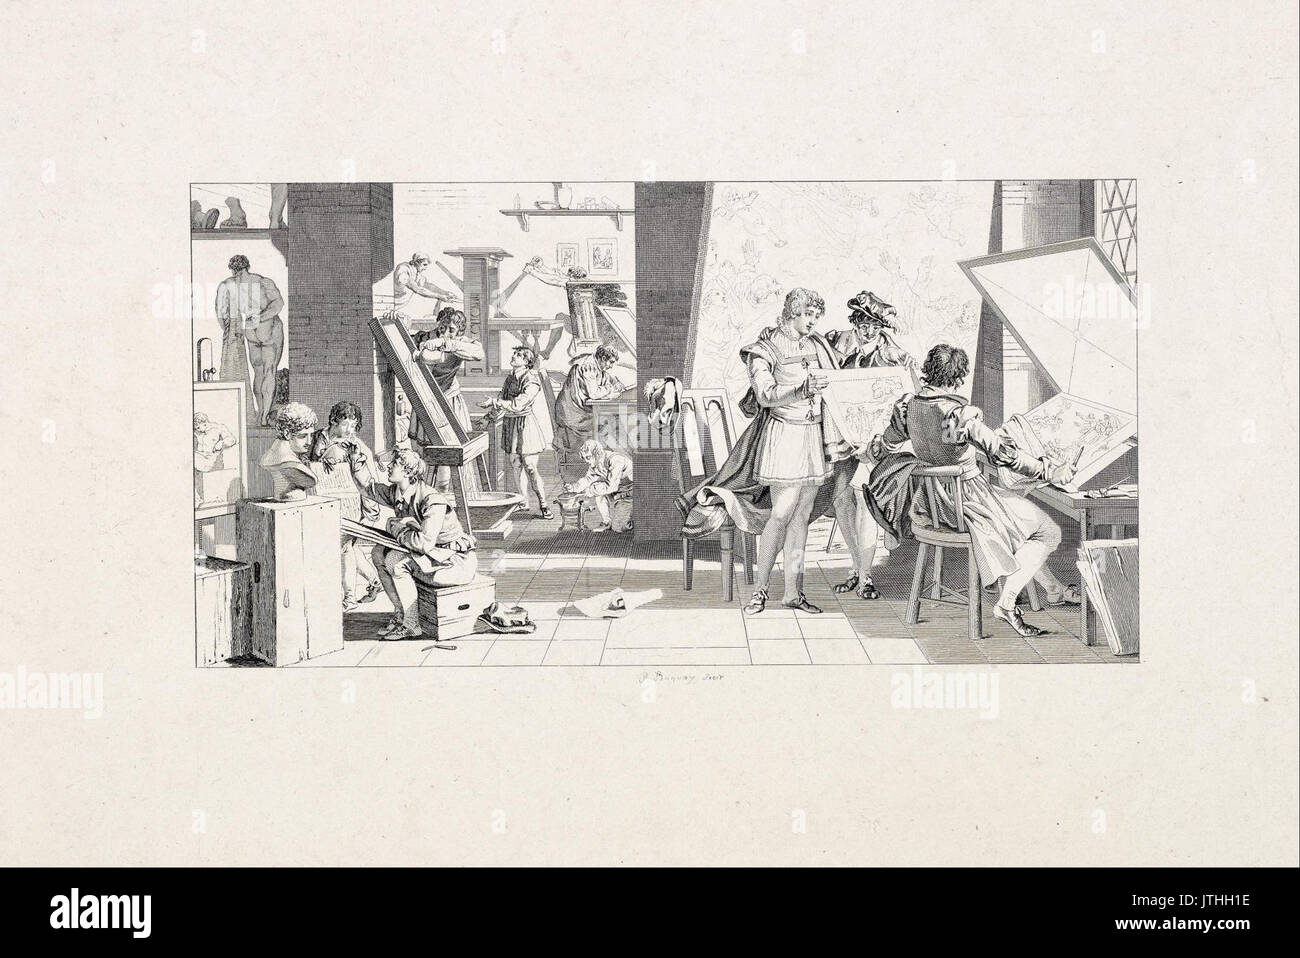 Pierre Charles Baquoy   Studio of a Printmaker - Stock Image